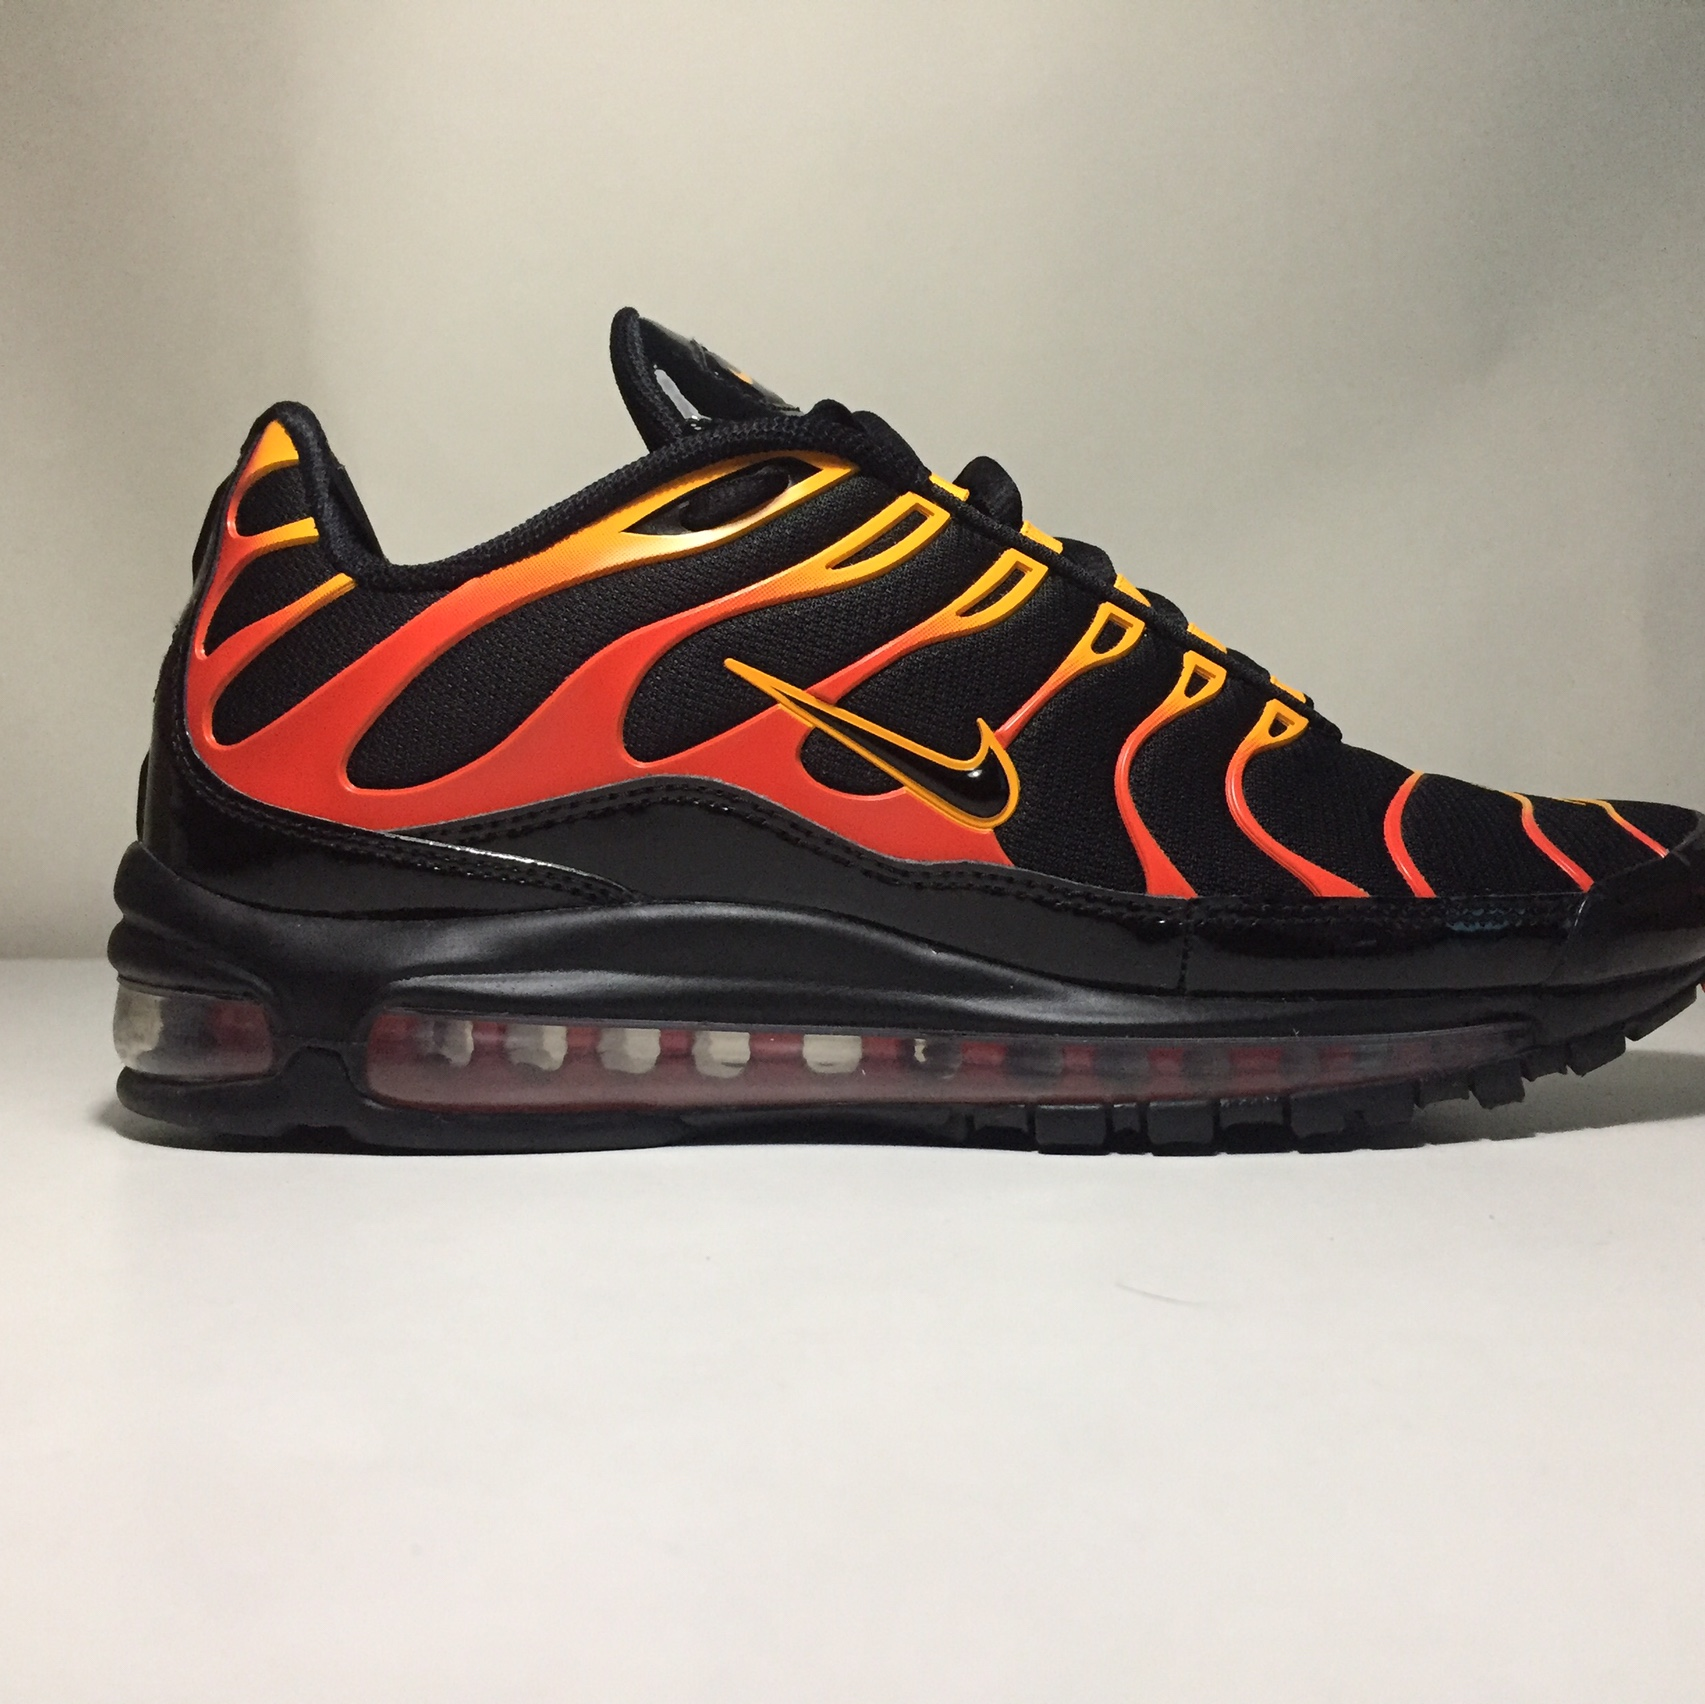 check out f021f 8fa23 Nike Air Max 97 Plus Shock Orange Year: 2018 SKU:... - Depop